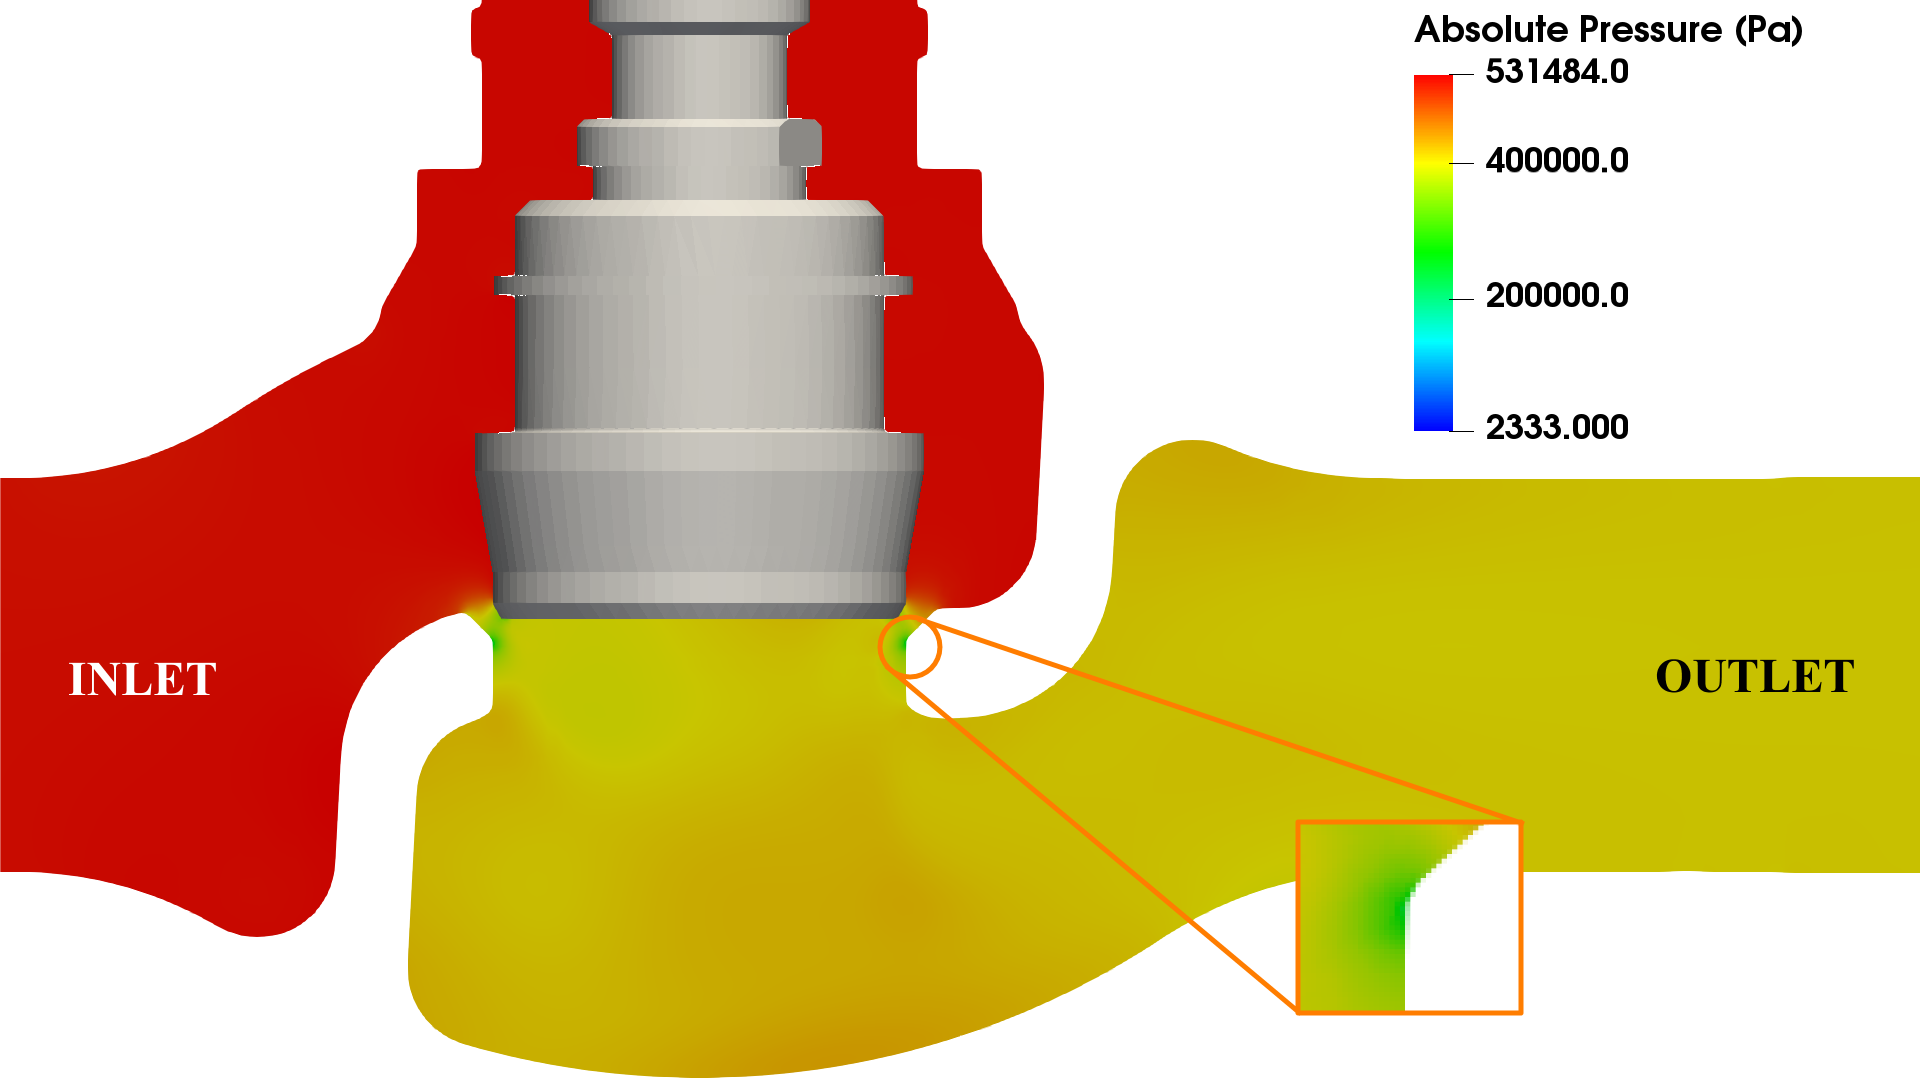 Valve cavitation CFD - outlet pressure 3 bar